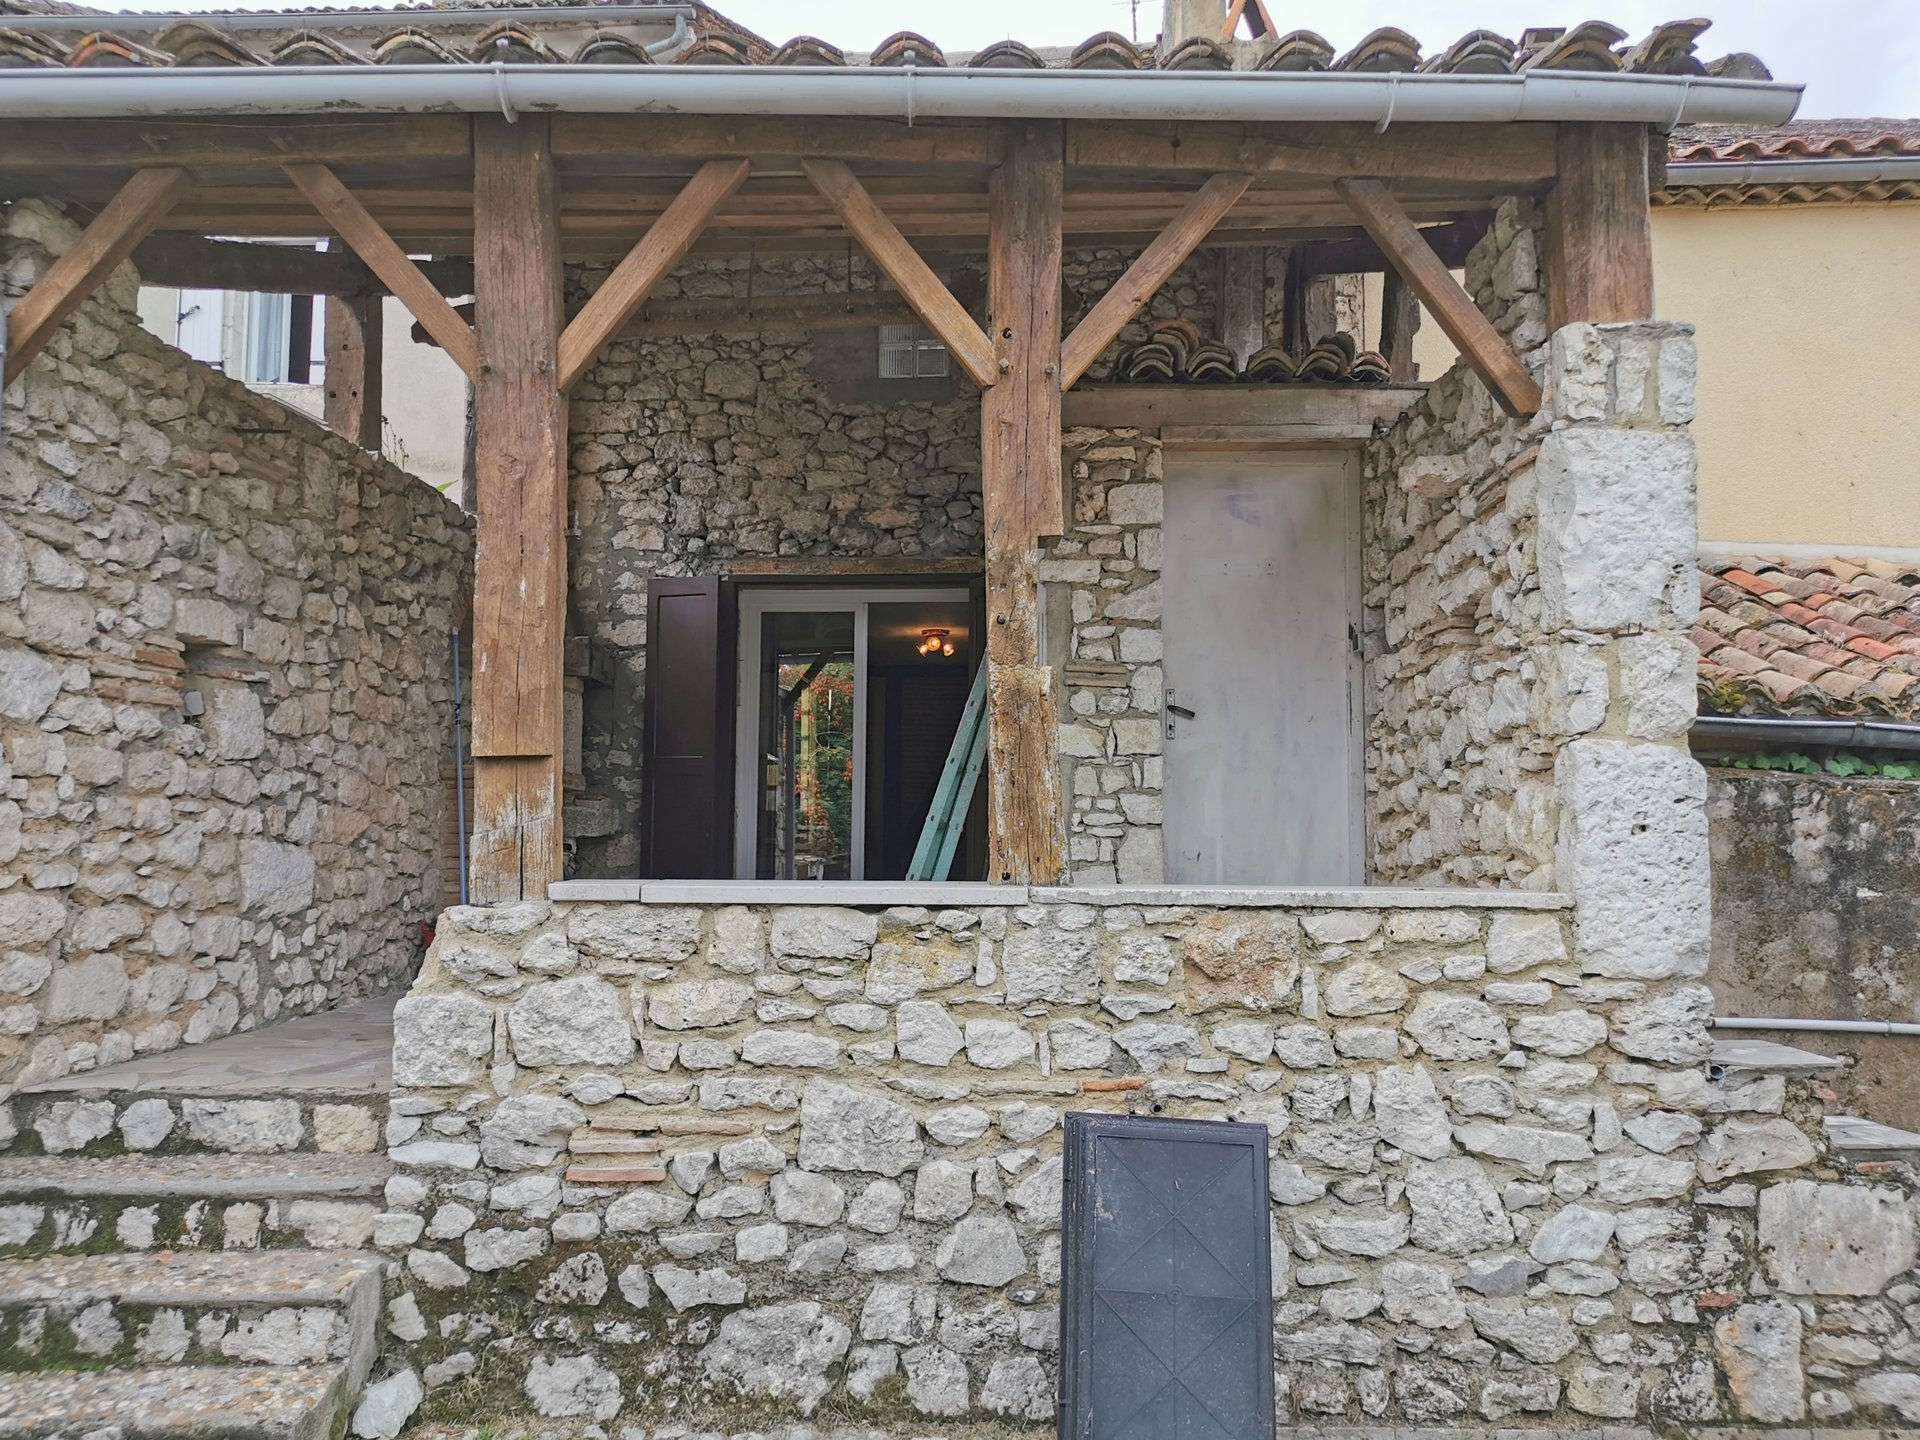 EXCLUSIVITE  Maison de village en pierres sur jardin